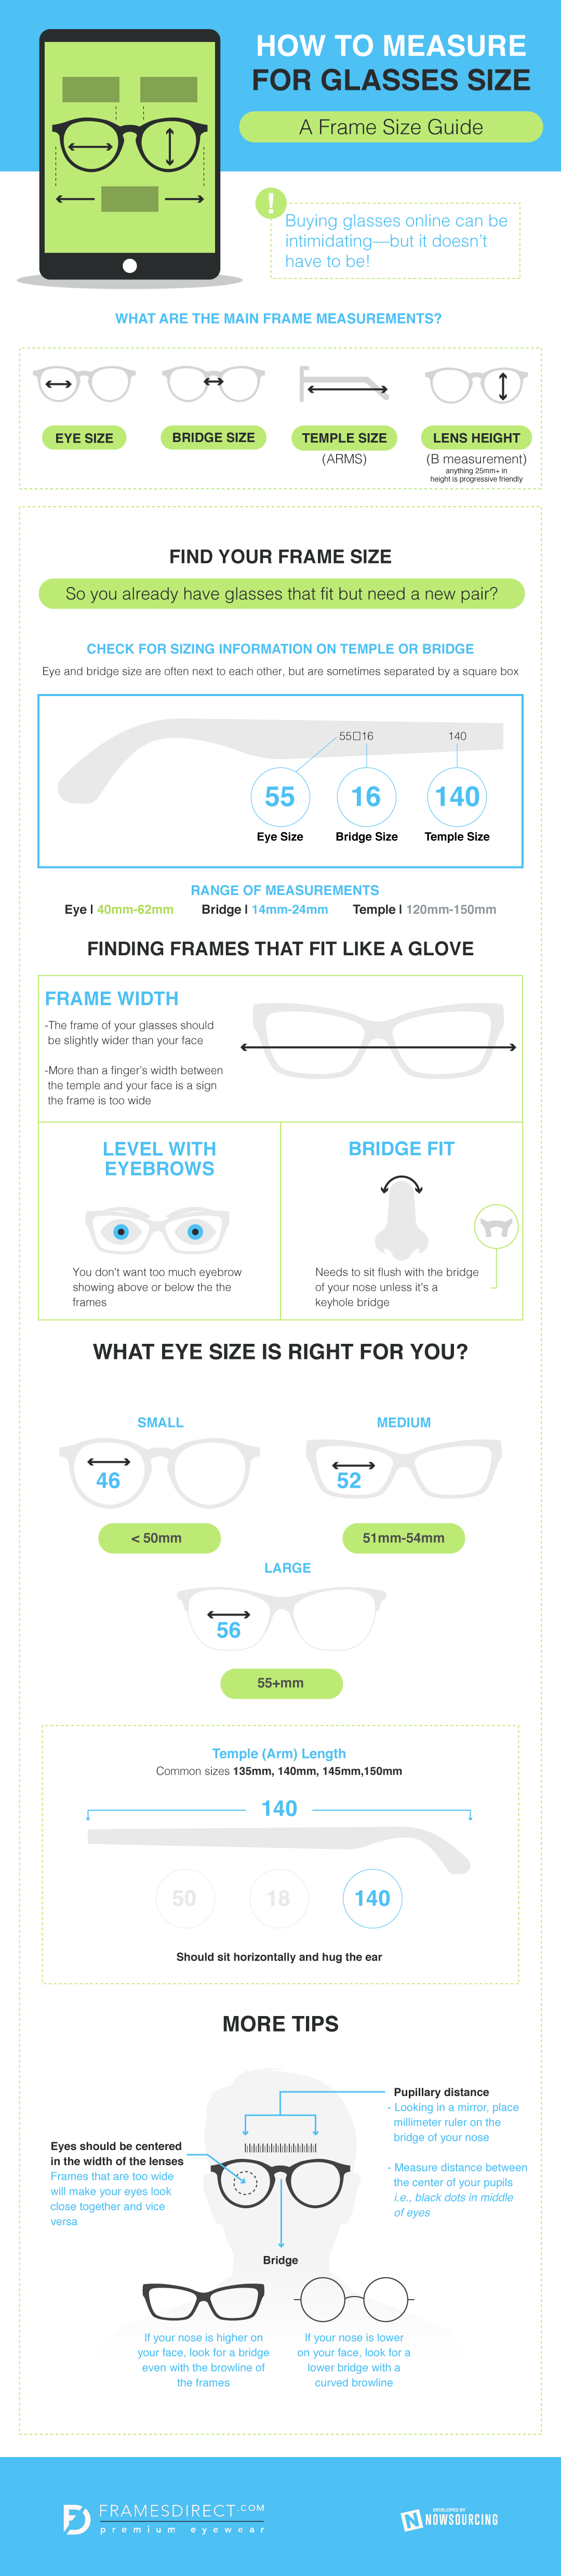 How to Measure Your Face for Glasses #Infographic | Posters ...